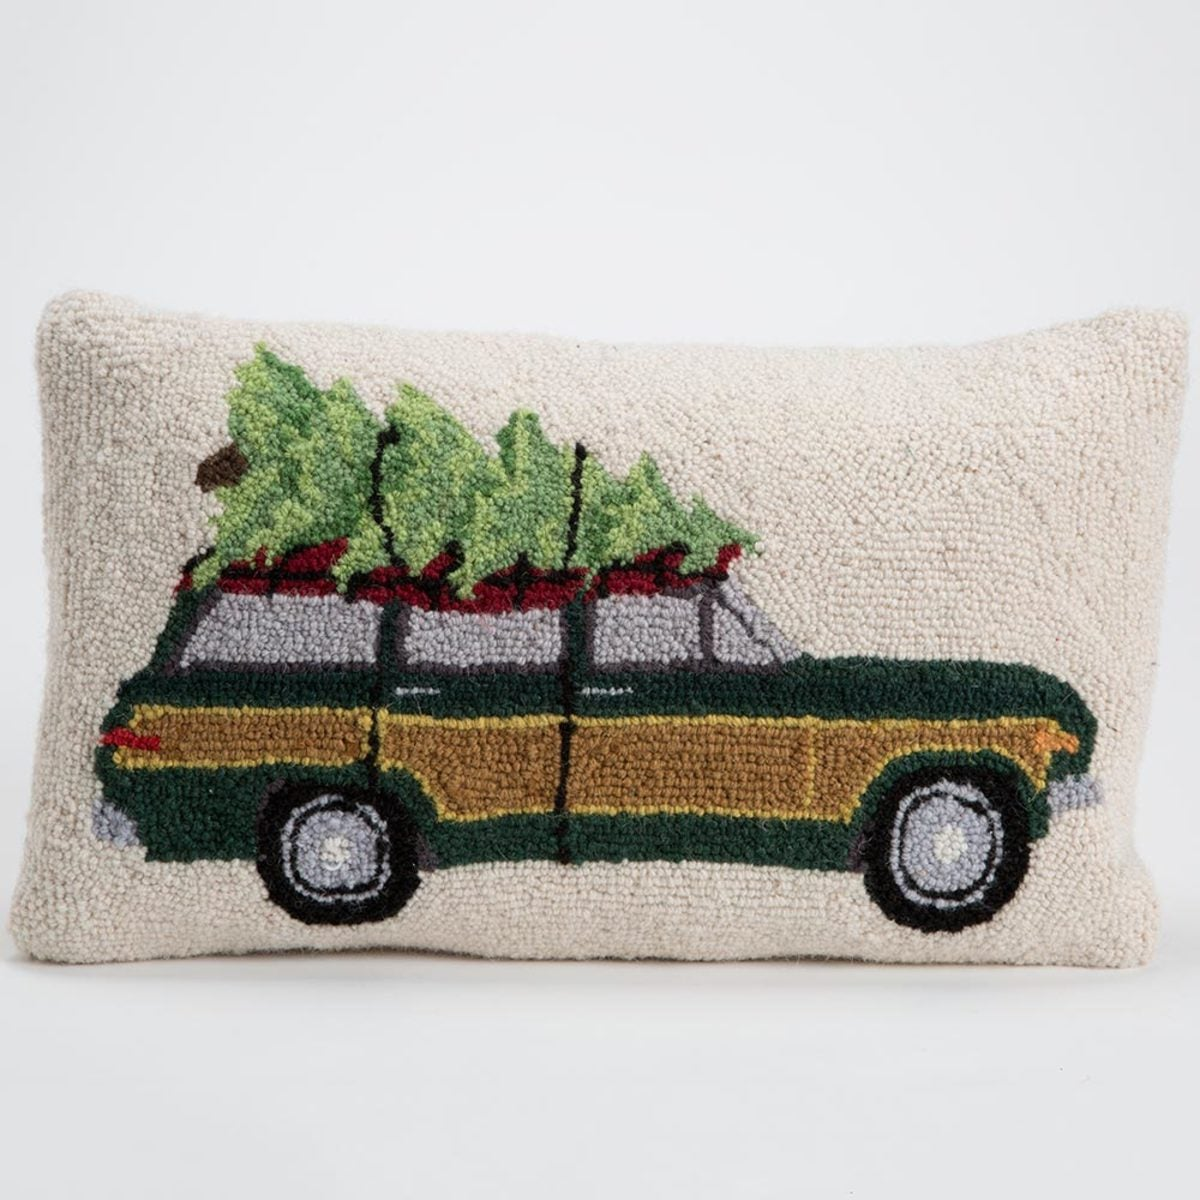 Hand-Hooked Wool Pillow - Station Wagon With Tree